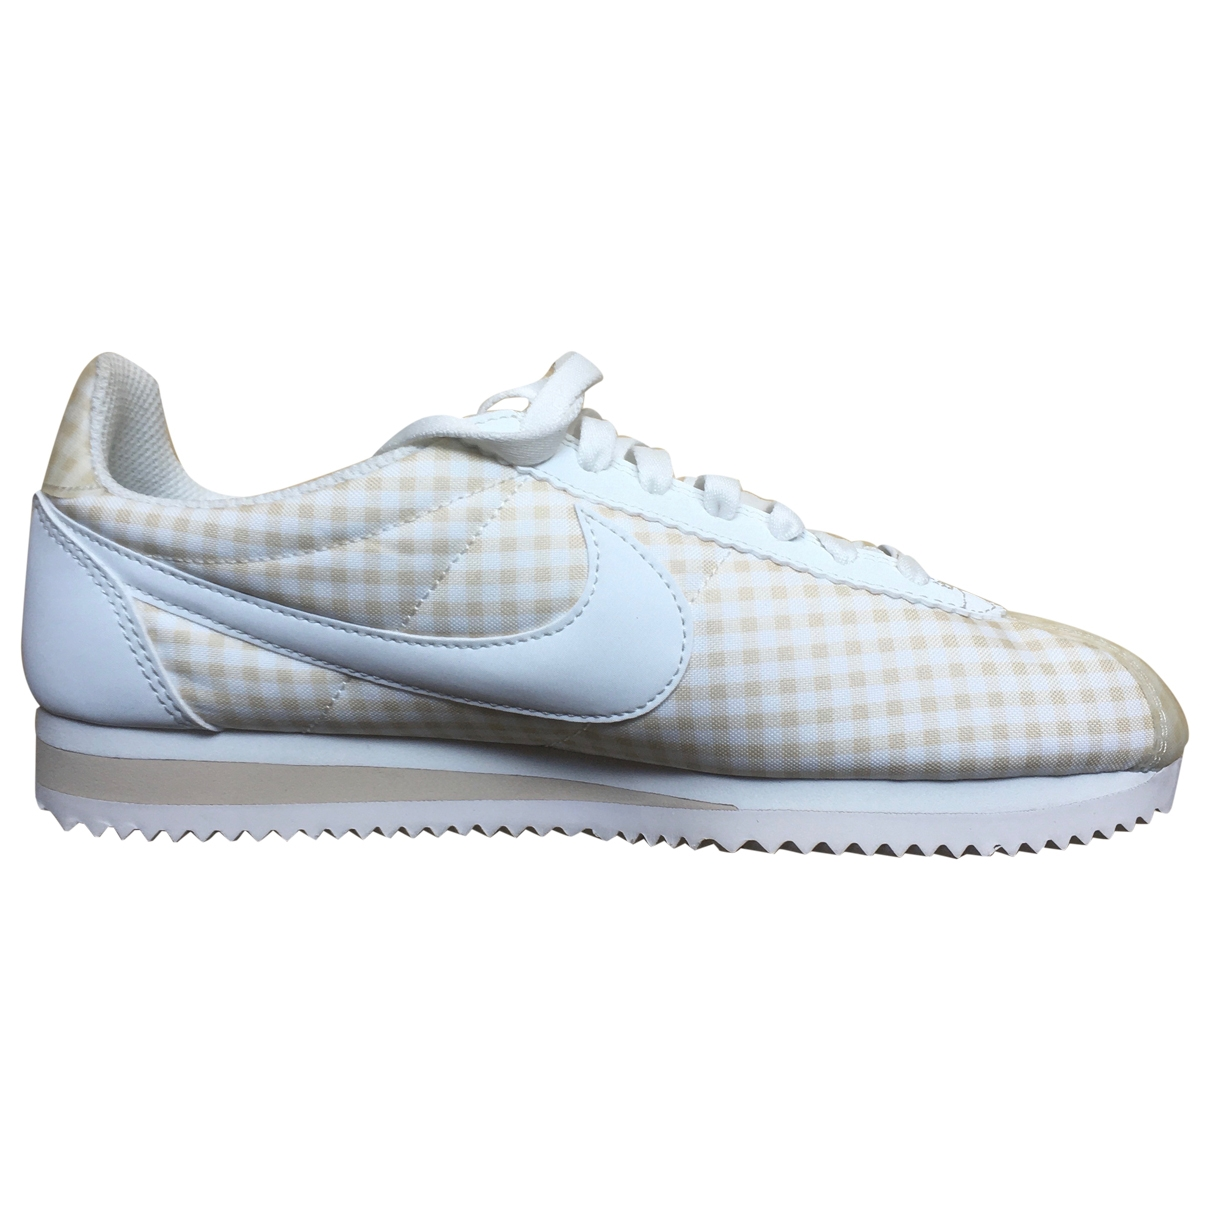 Nike Cortez Beige Leather Trainers for Women 38.5 EU